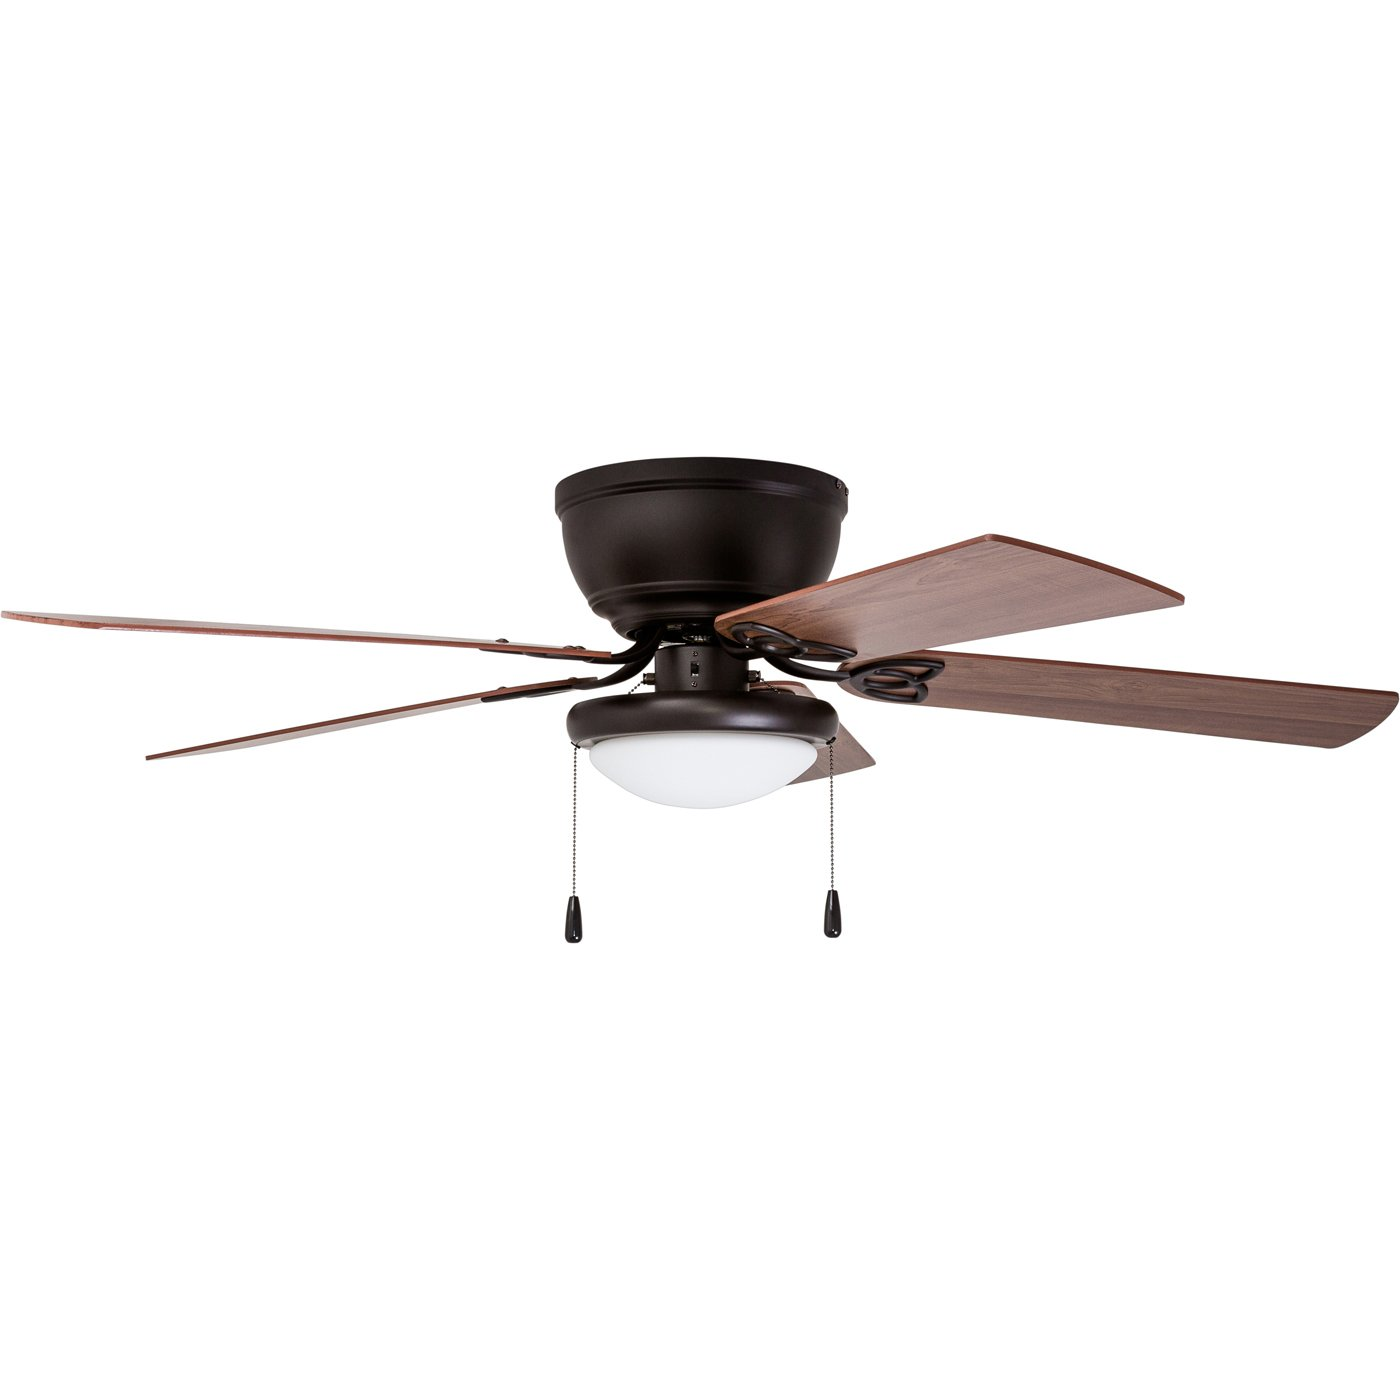 Prominence Home 01 Brealey Hugger Ceiling Fan with LED Bowl